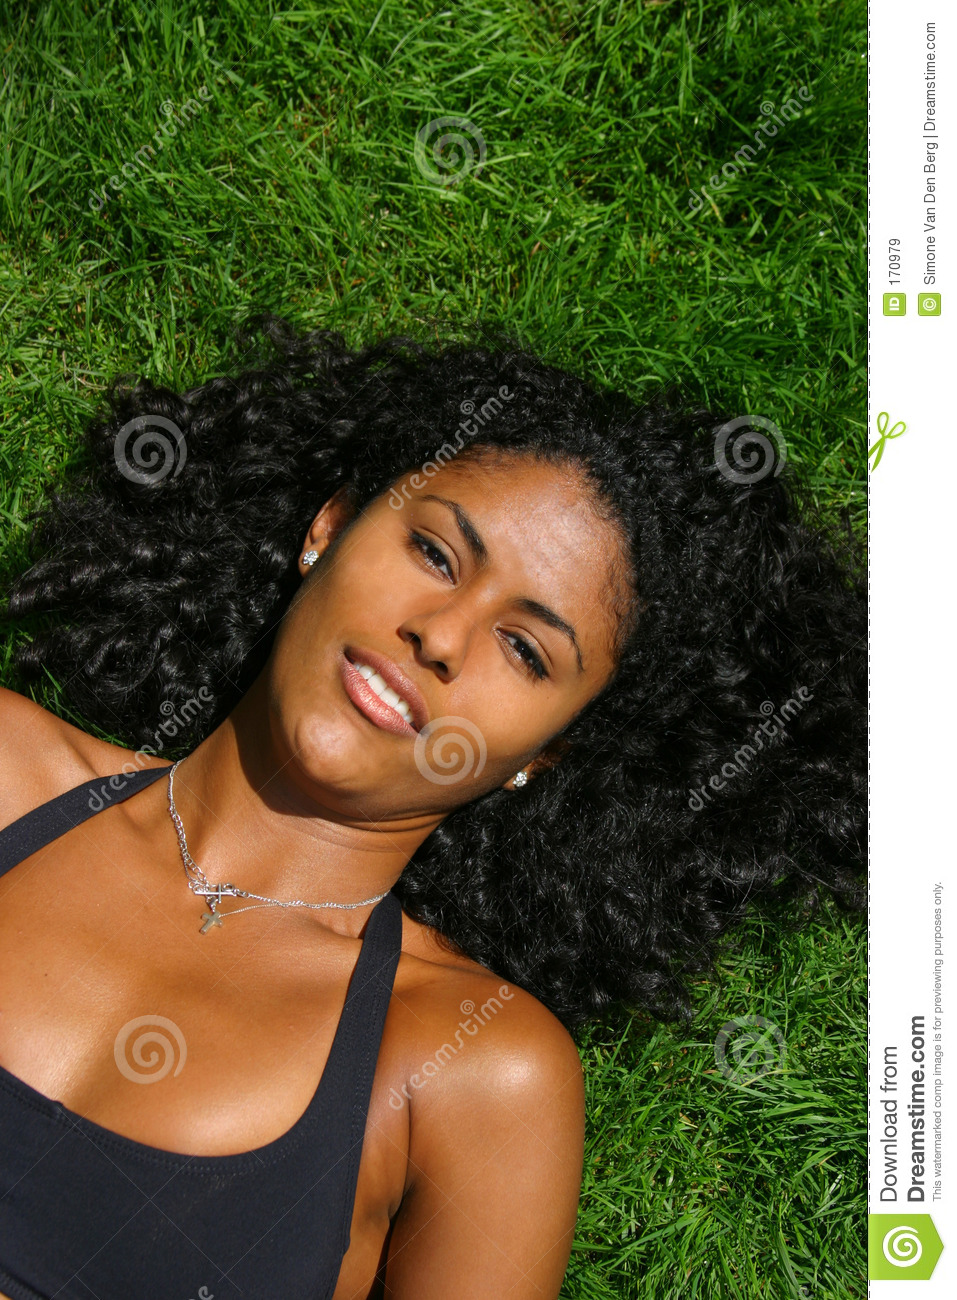 Beauty lying on the grass